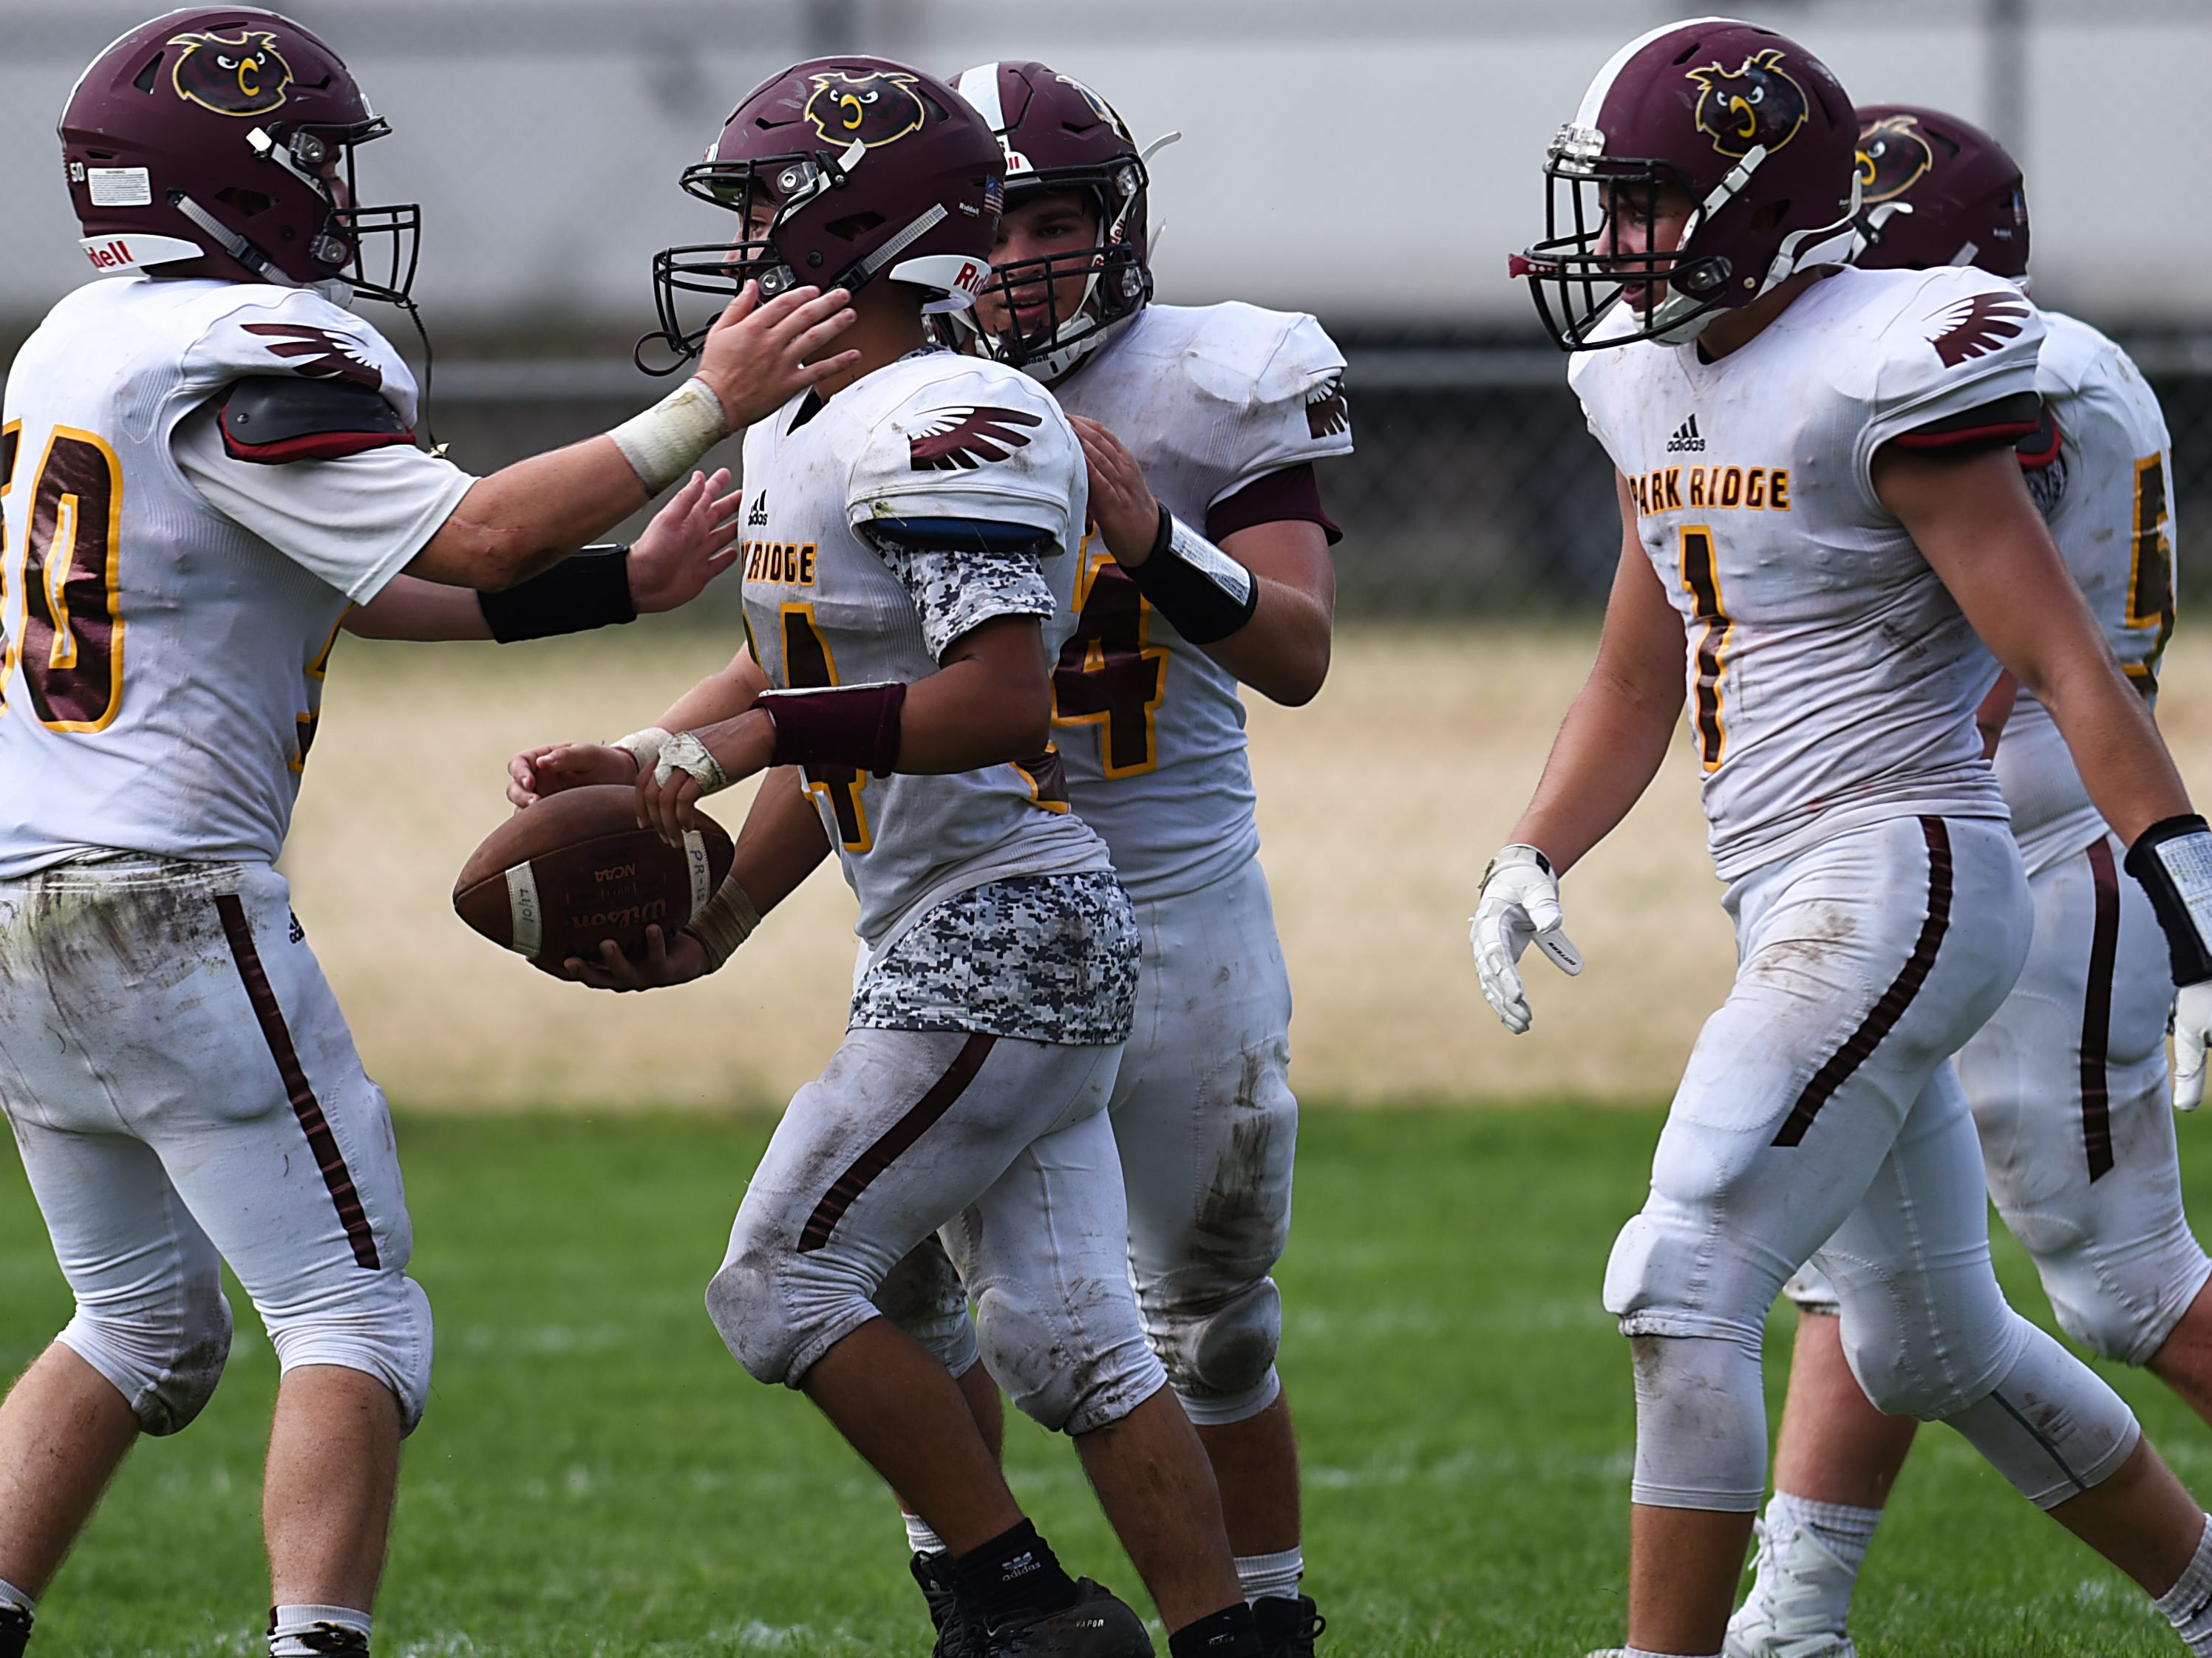 High school football game between Park Ridge and St. Mary at Tamblyn Field in Rutherford on Saturday September 15, 2018. (From left) PR#50 Ryan Misciagna, PR#24 Raman Marcus, PR#4 Vincent Pinto, PR#1 Brendan Hughes and PR#52 Dylan Conkling celebrate.